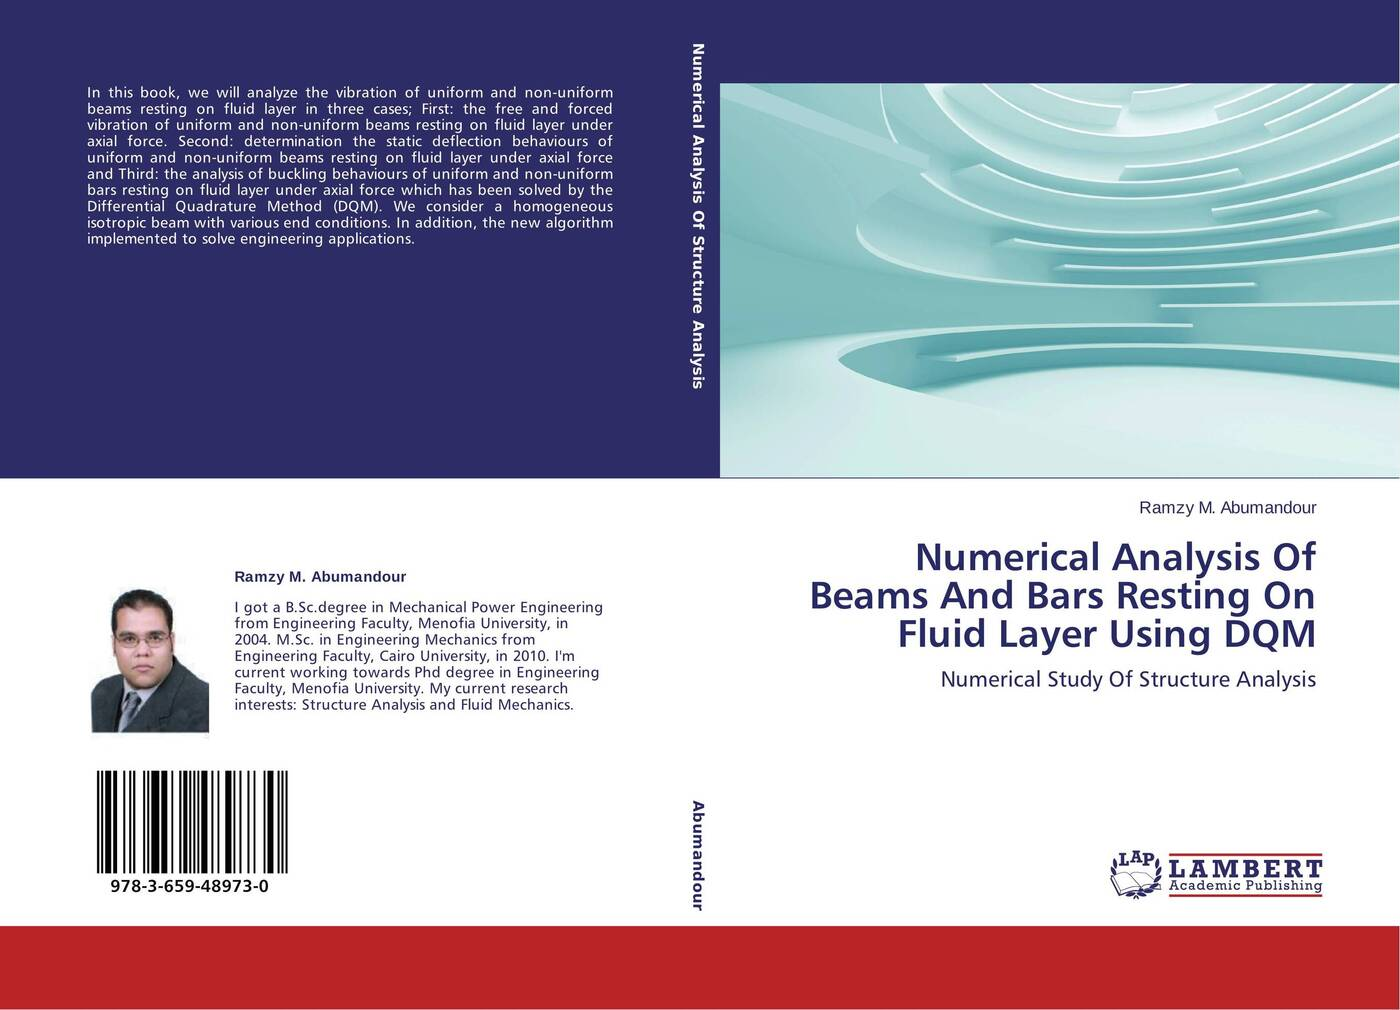 Ramzy M. Abumandour Numerical Analysis Of Beams And Bars Resting On Fluid Layer Using DQM a man in uniform